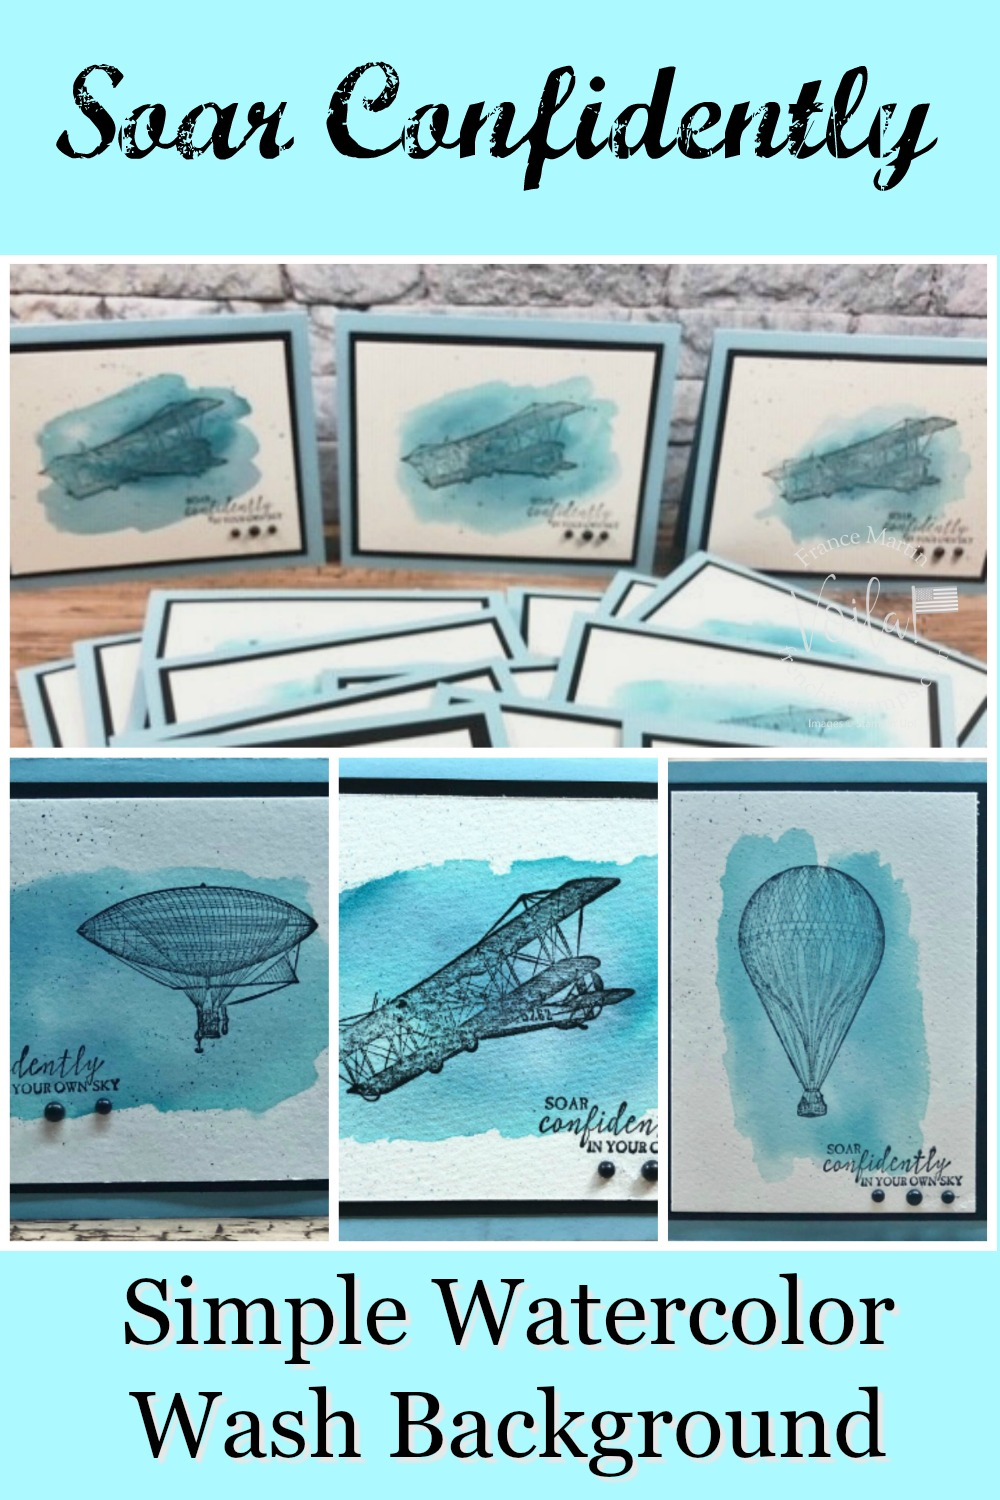 Watercolor Wash Background And Soar Confidently Stamp Set For A Masculine Card